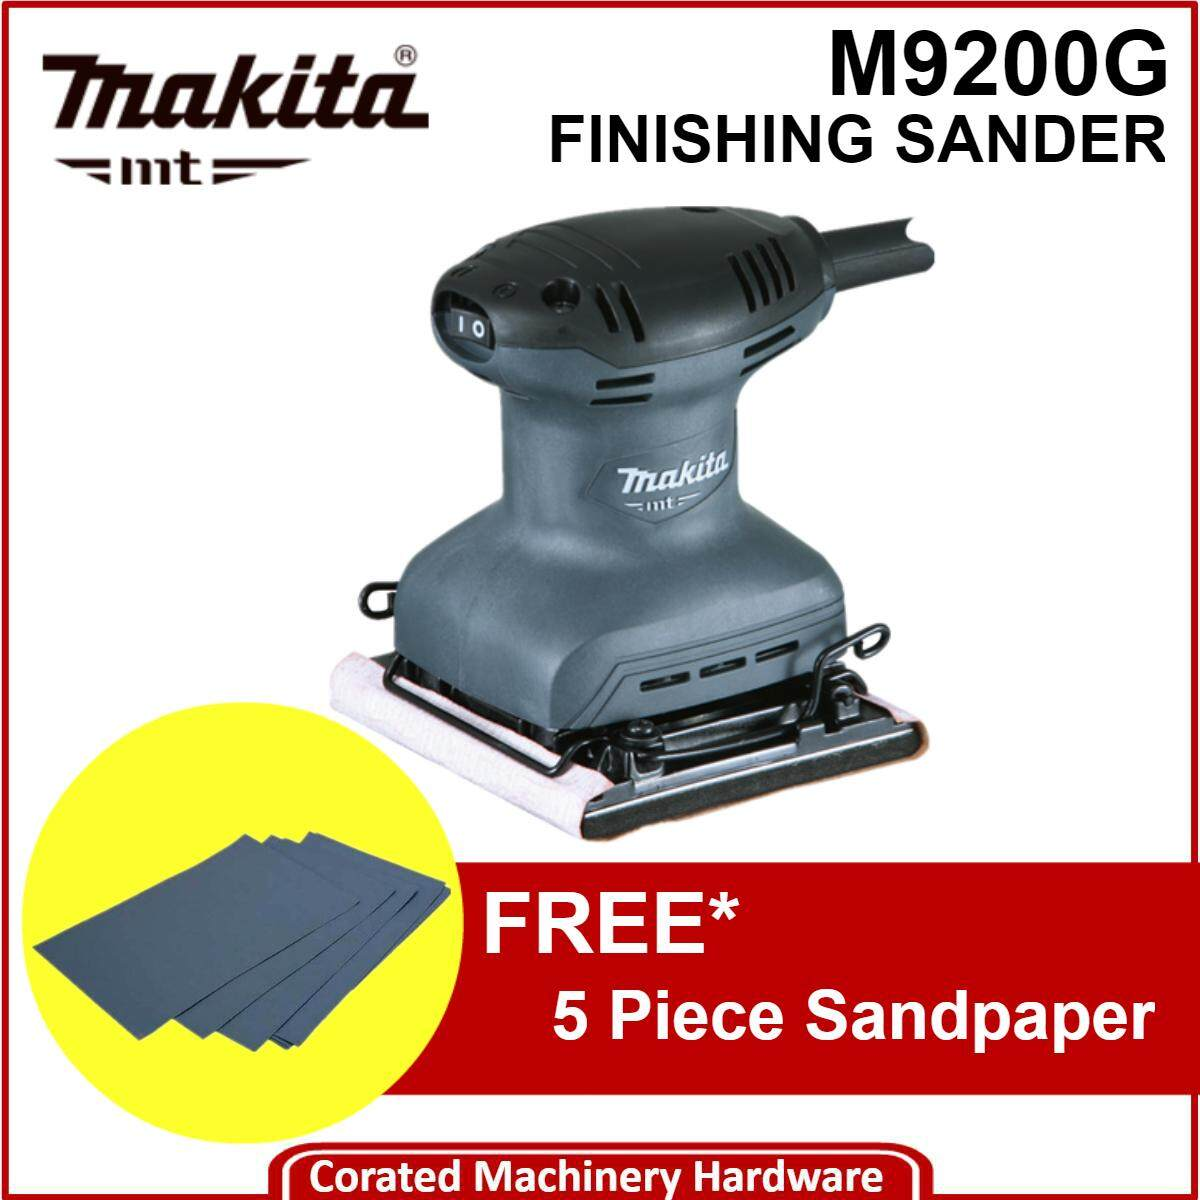 [CORATED] Makita M9200G Finishing Sander (112 x 102MM, 180W, 14,000OPM)